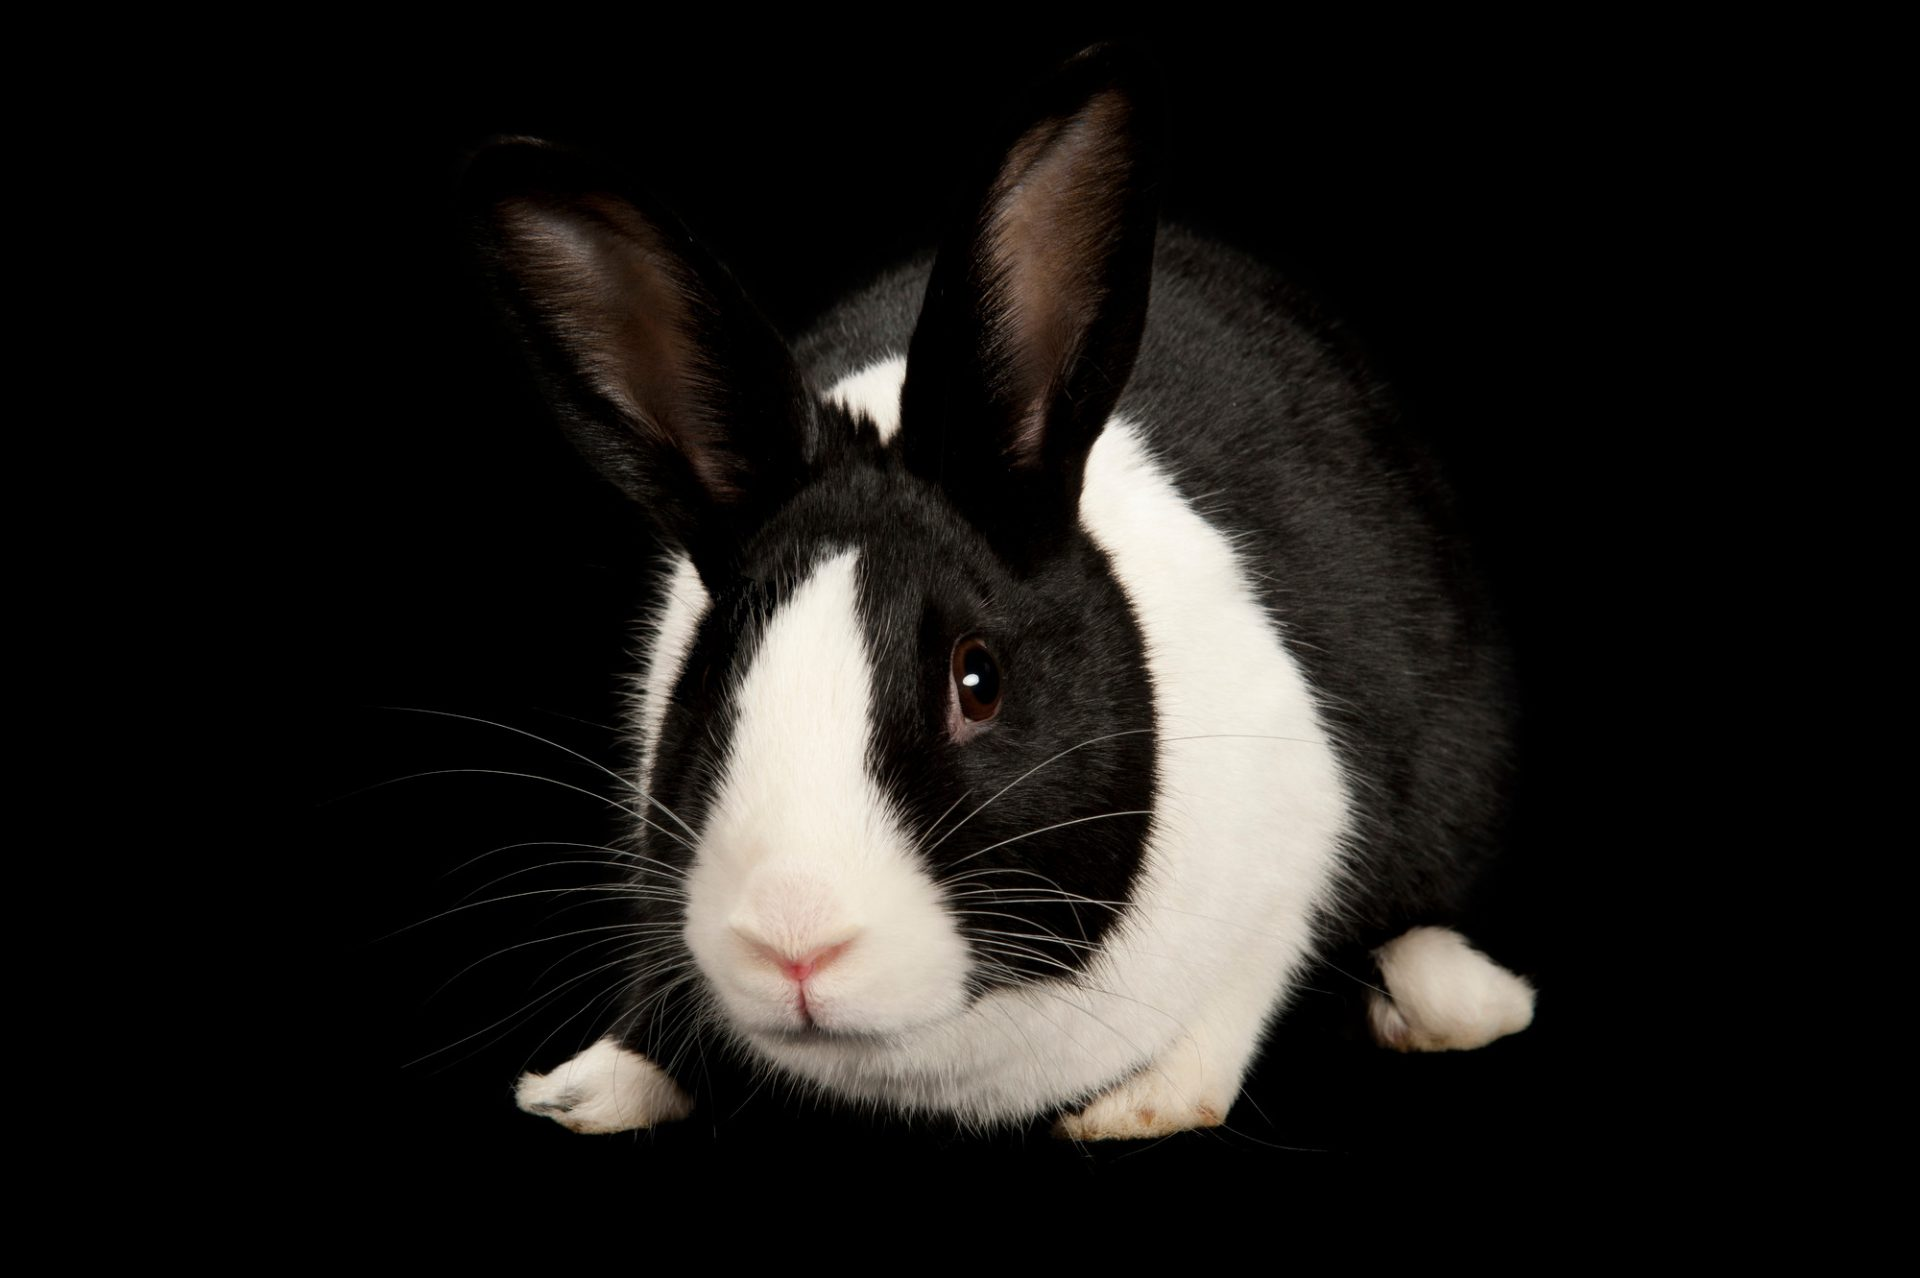 A domestic rabbit (Oryctolagus cuniculus) that is up for adoption at the Capital Humane Society.